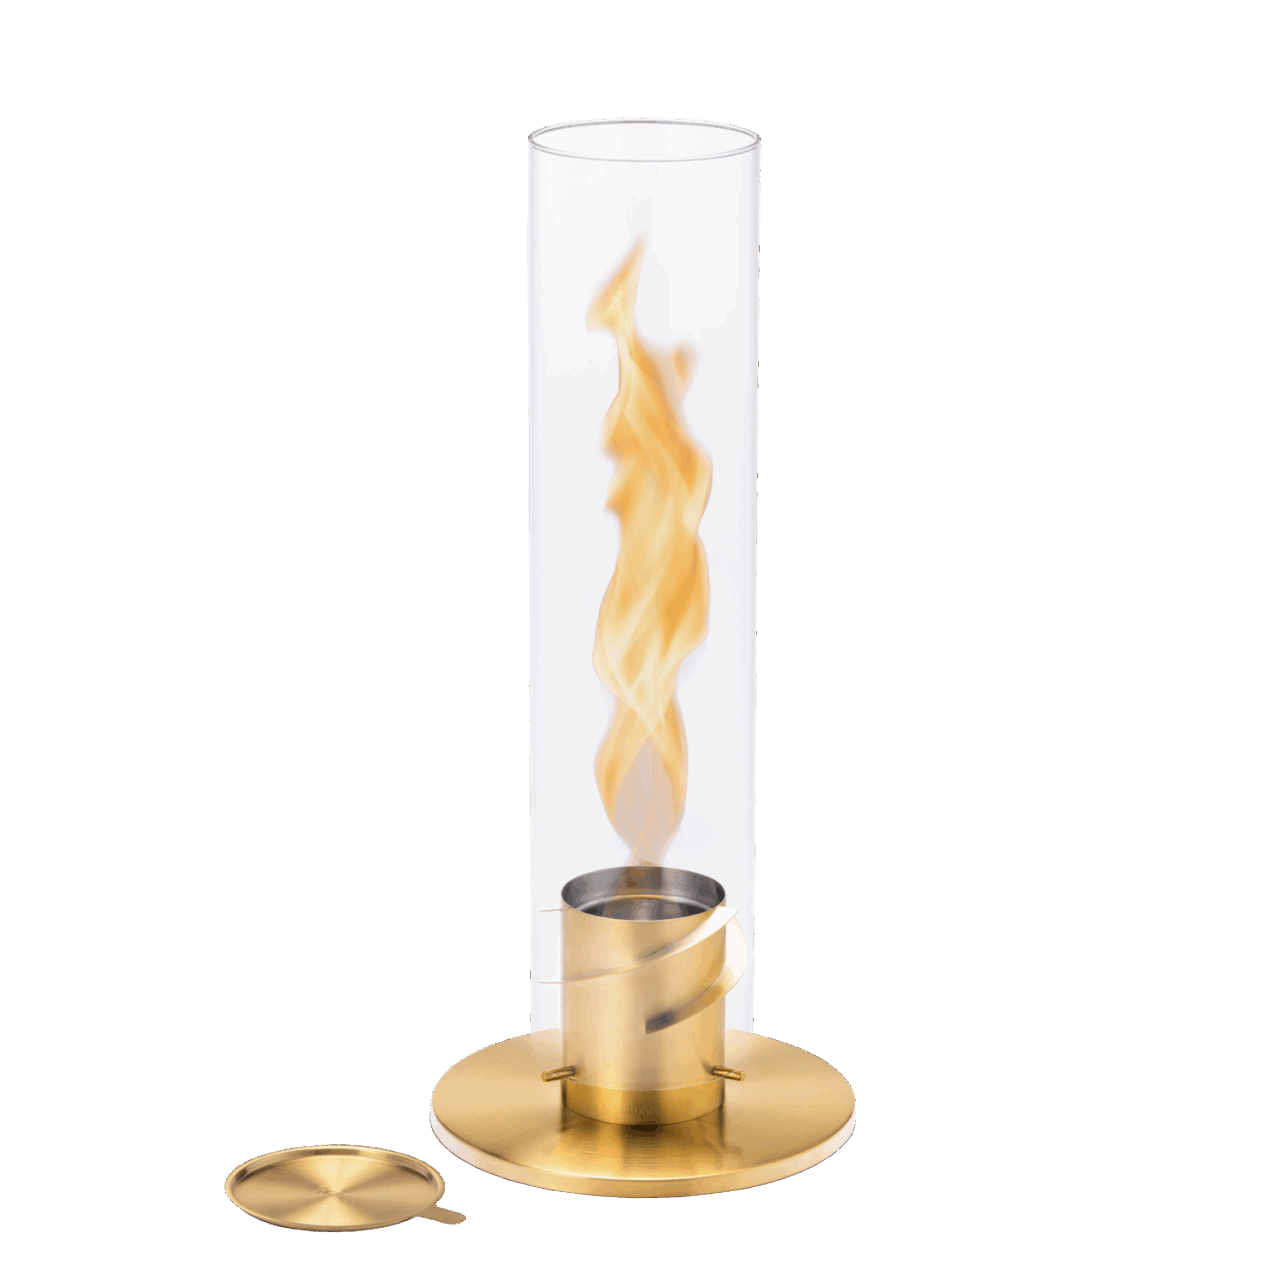 SPIN 120 Table Fire gold